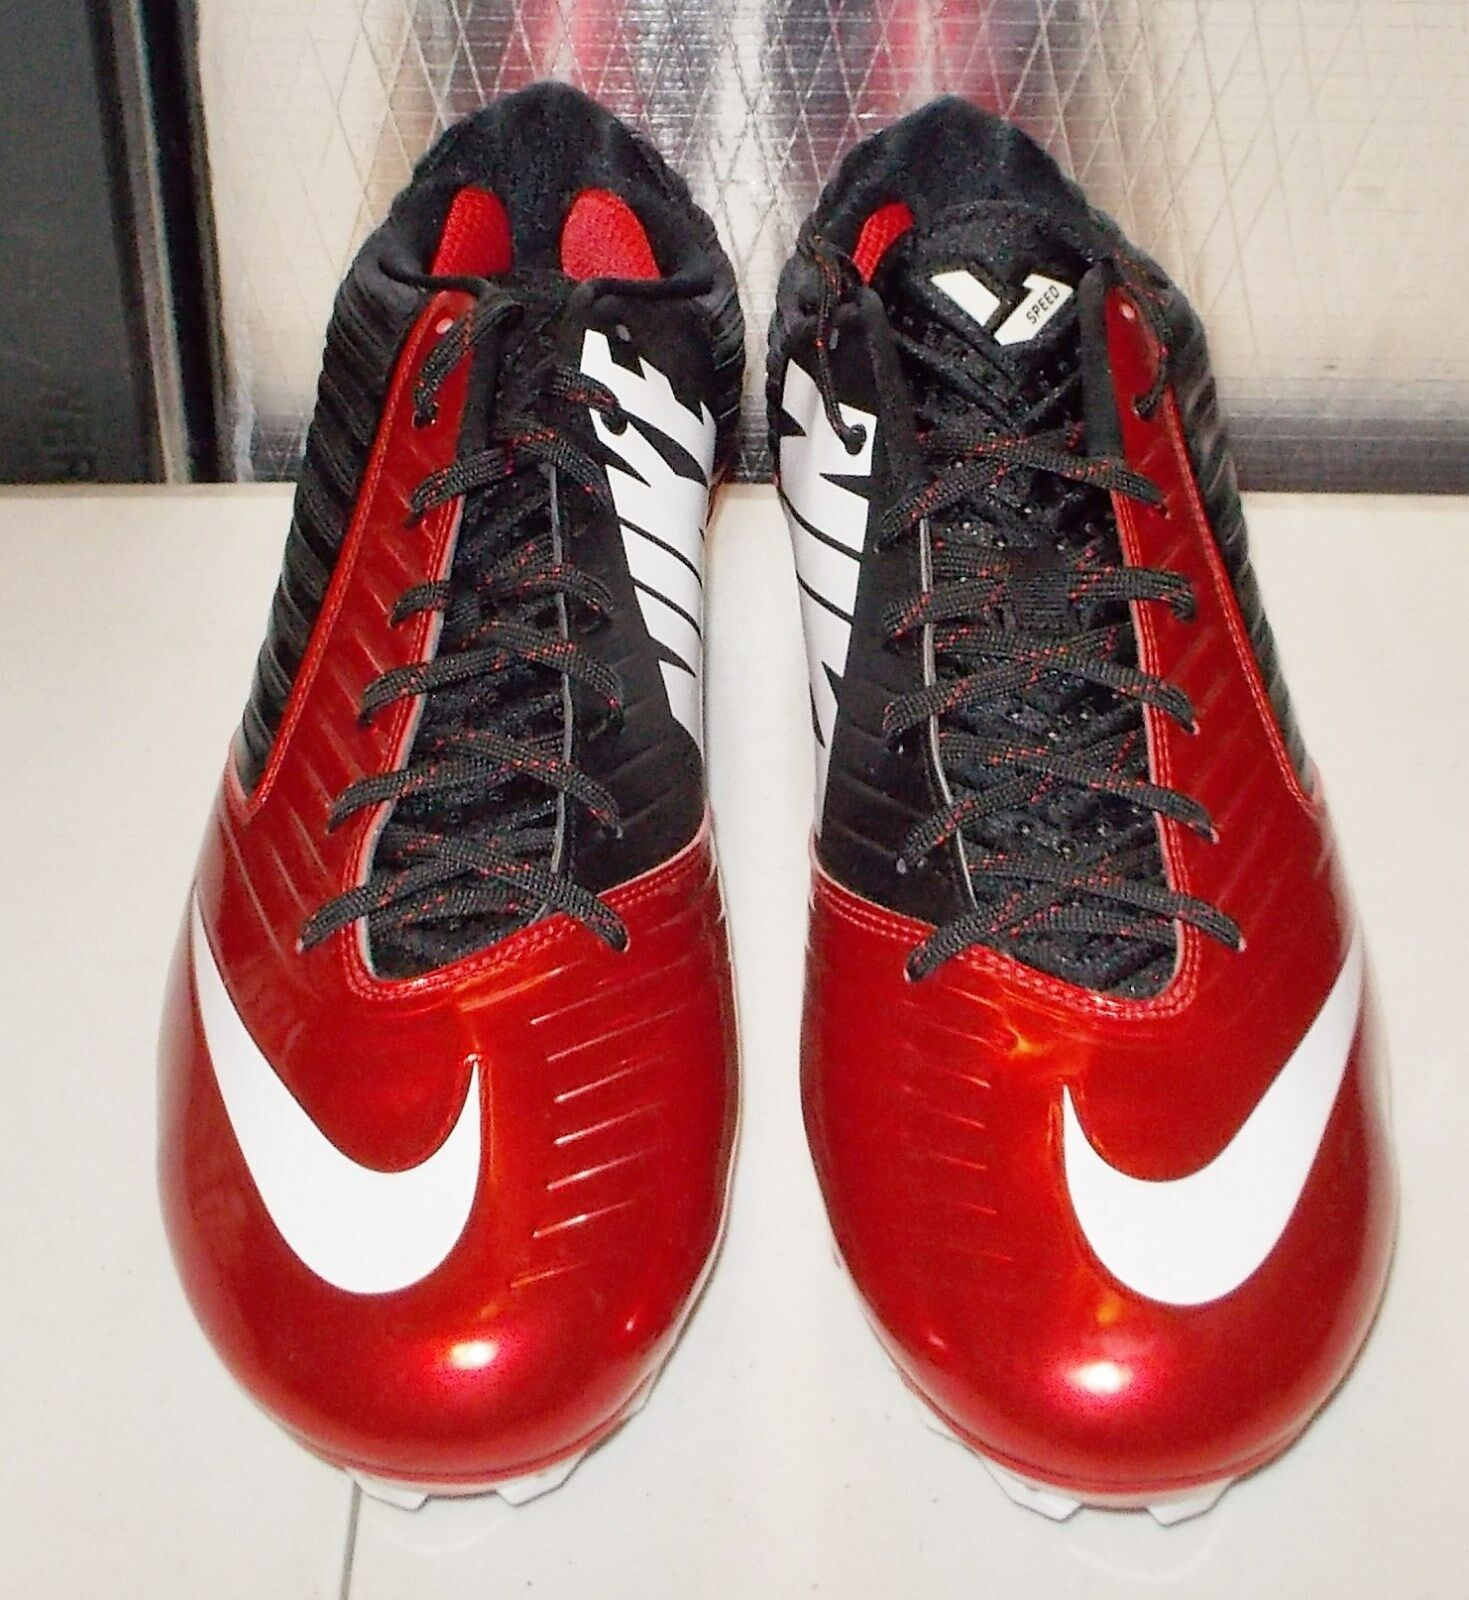 e771f7bfc ... sweden nike vapor speed low td football cleats mens game 15 game mens  red black 643152